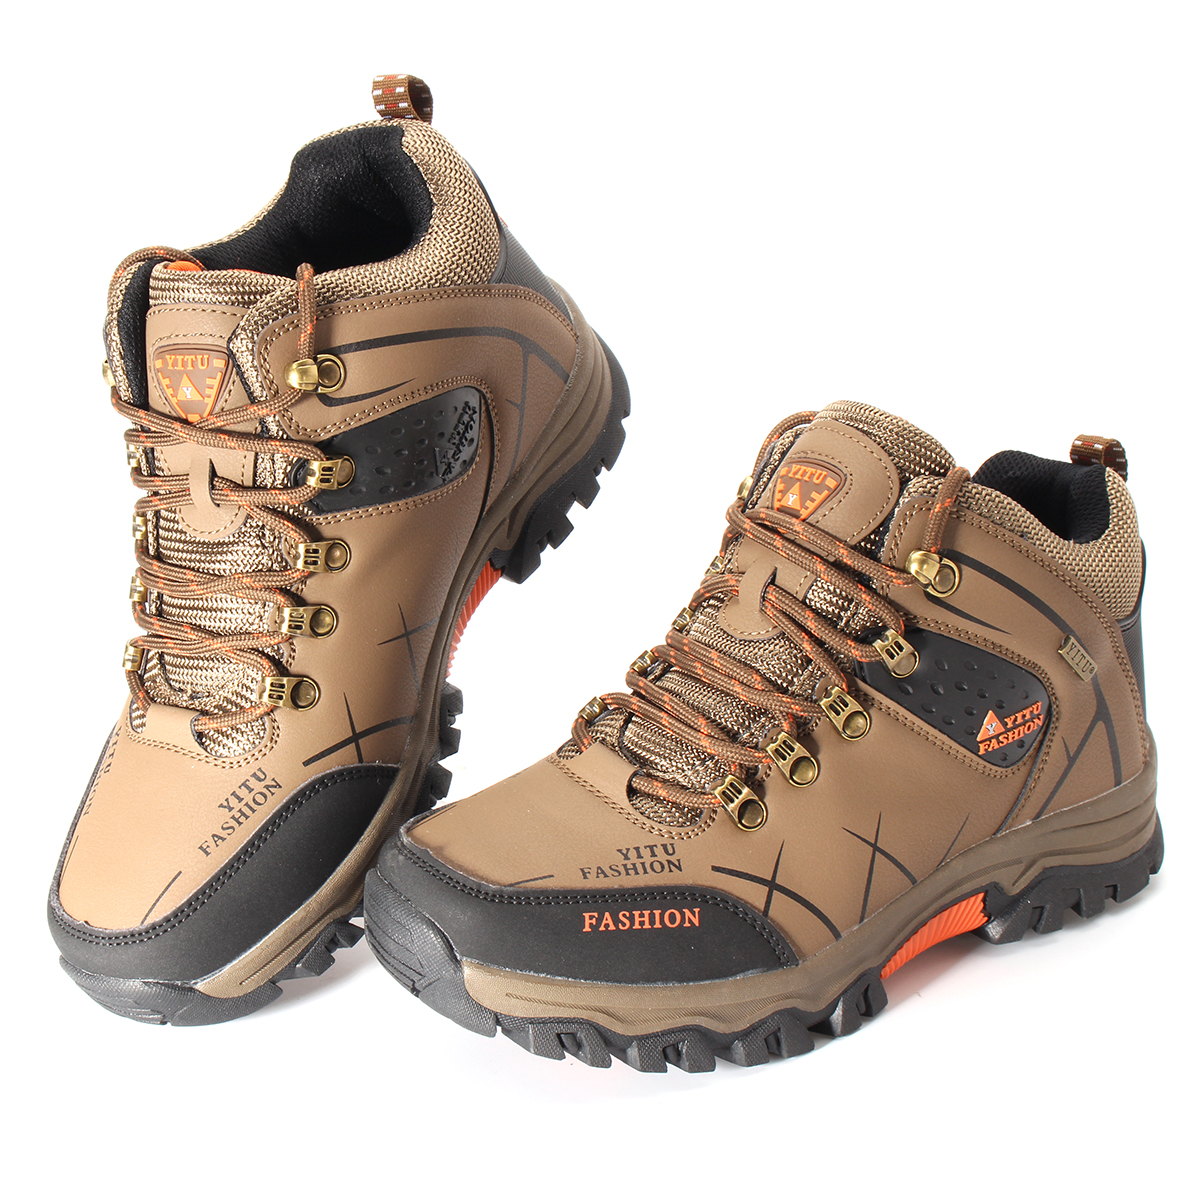 Mens Big Size Trail Hiking Boots Waterproof Athletic Outdoors Safety D Island Shoes Hikers Fashionable Brown Detail Image